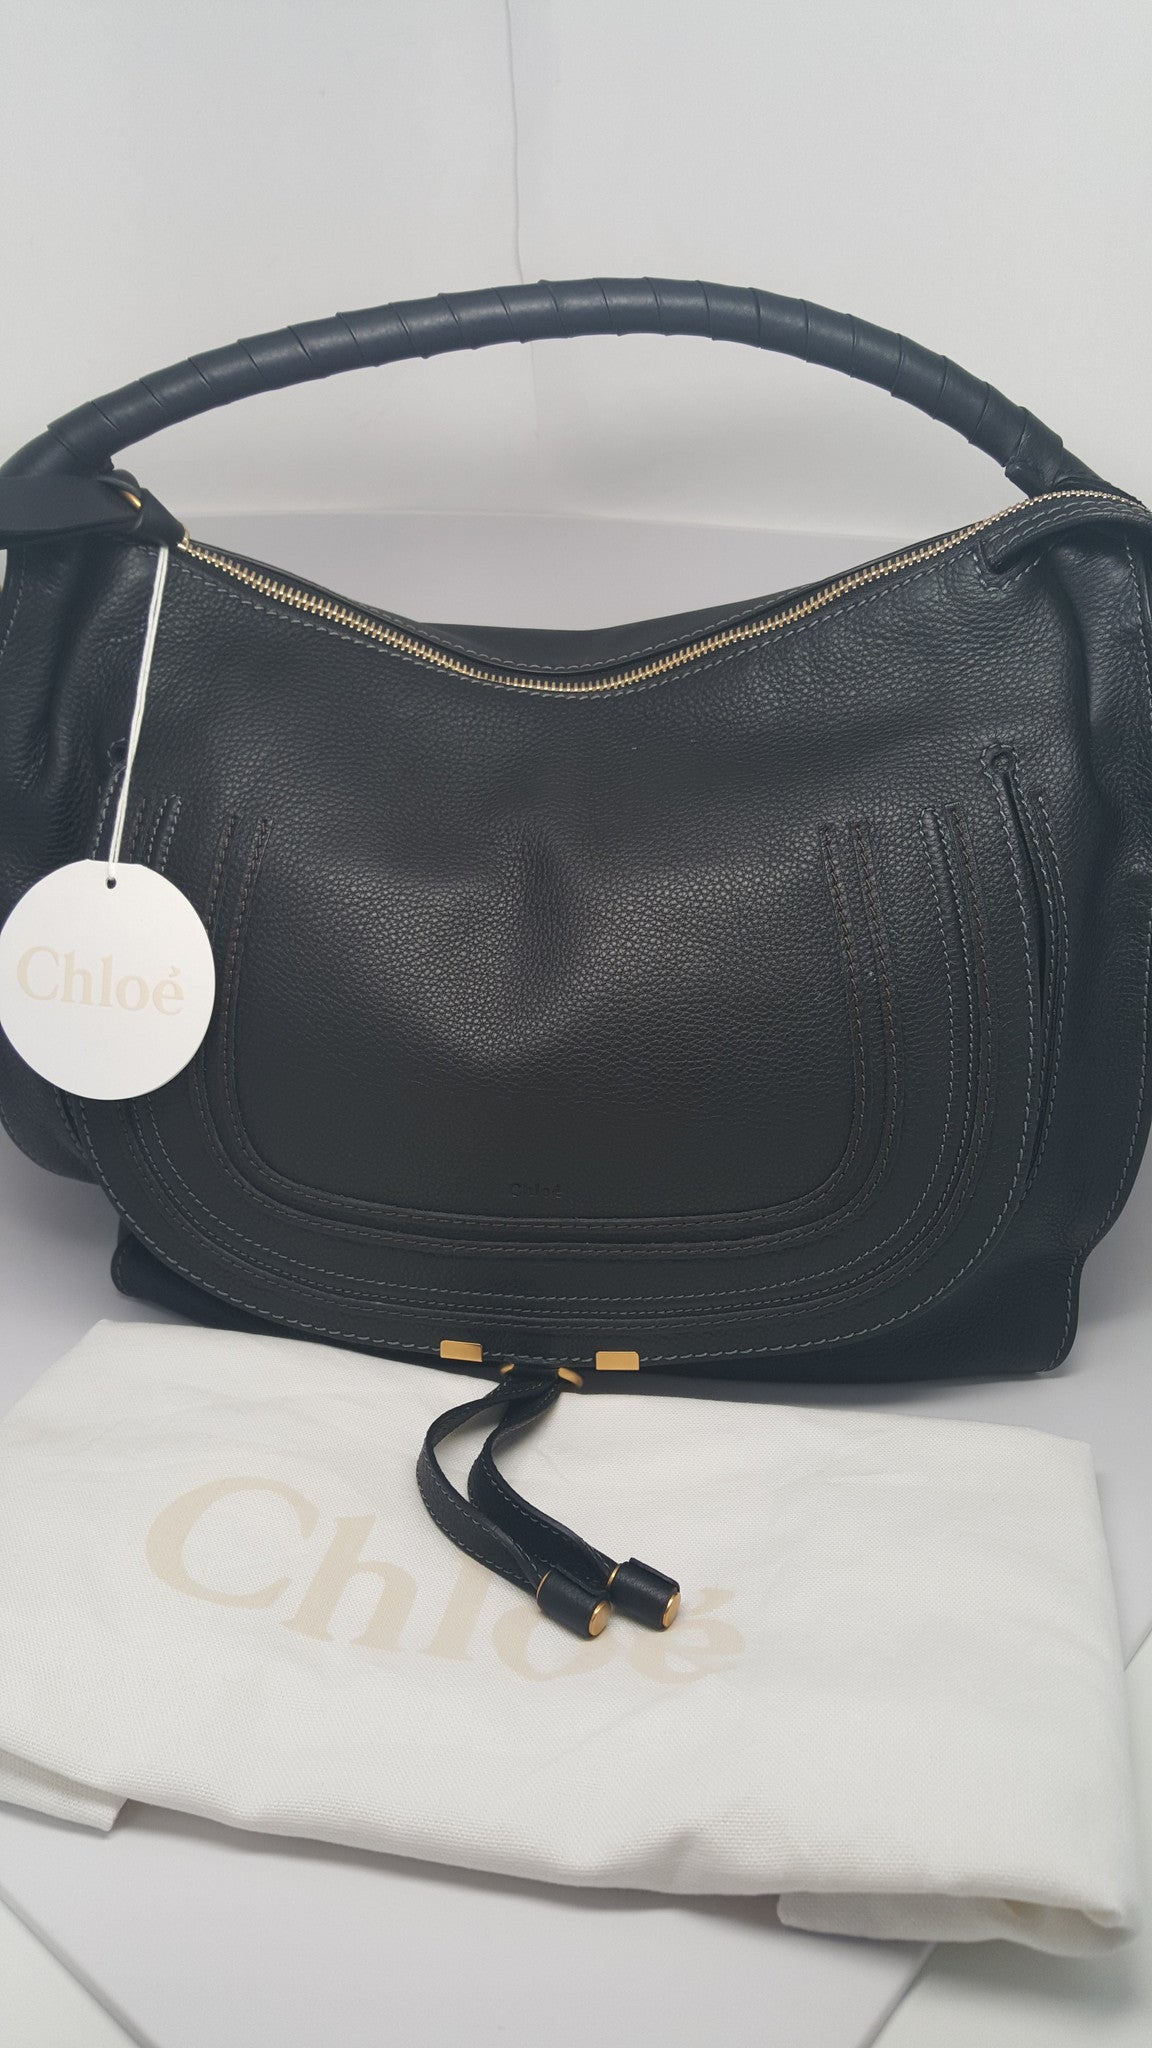 Chloé MARCIE LARGE LEATHER HOBO